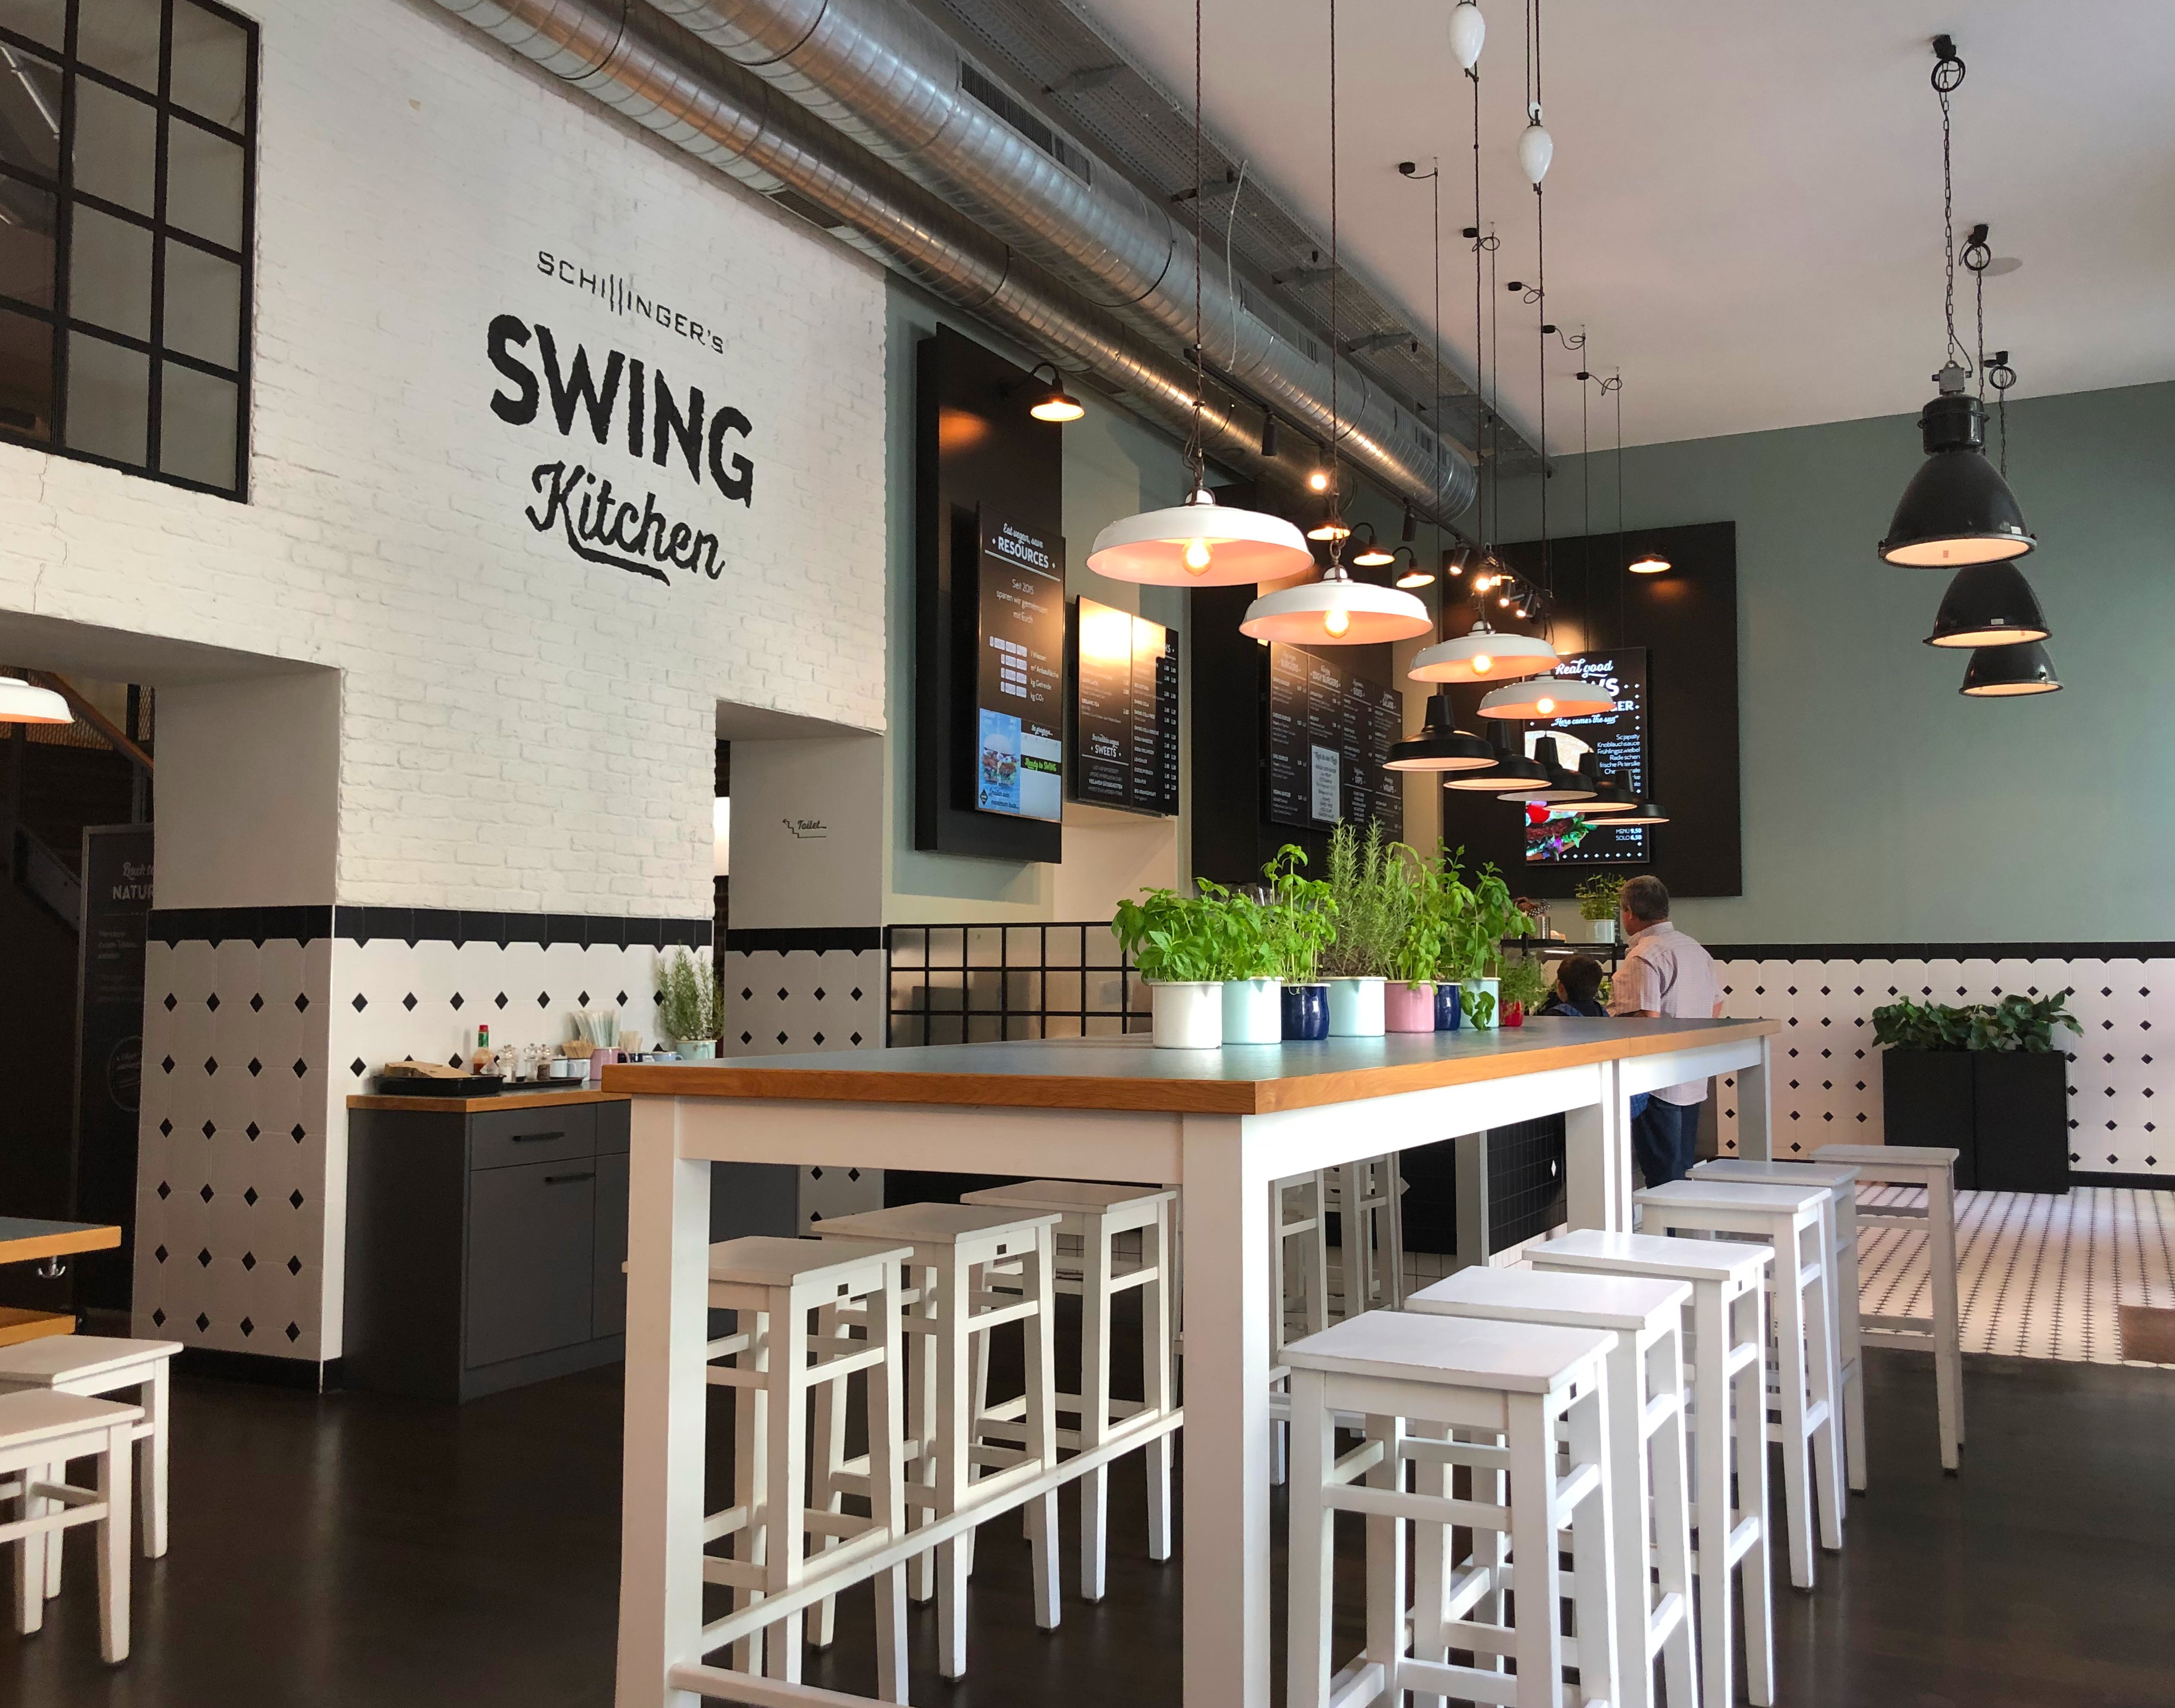 Schillinger's Swing Kitchen Graz